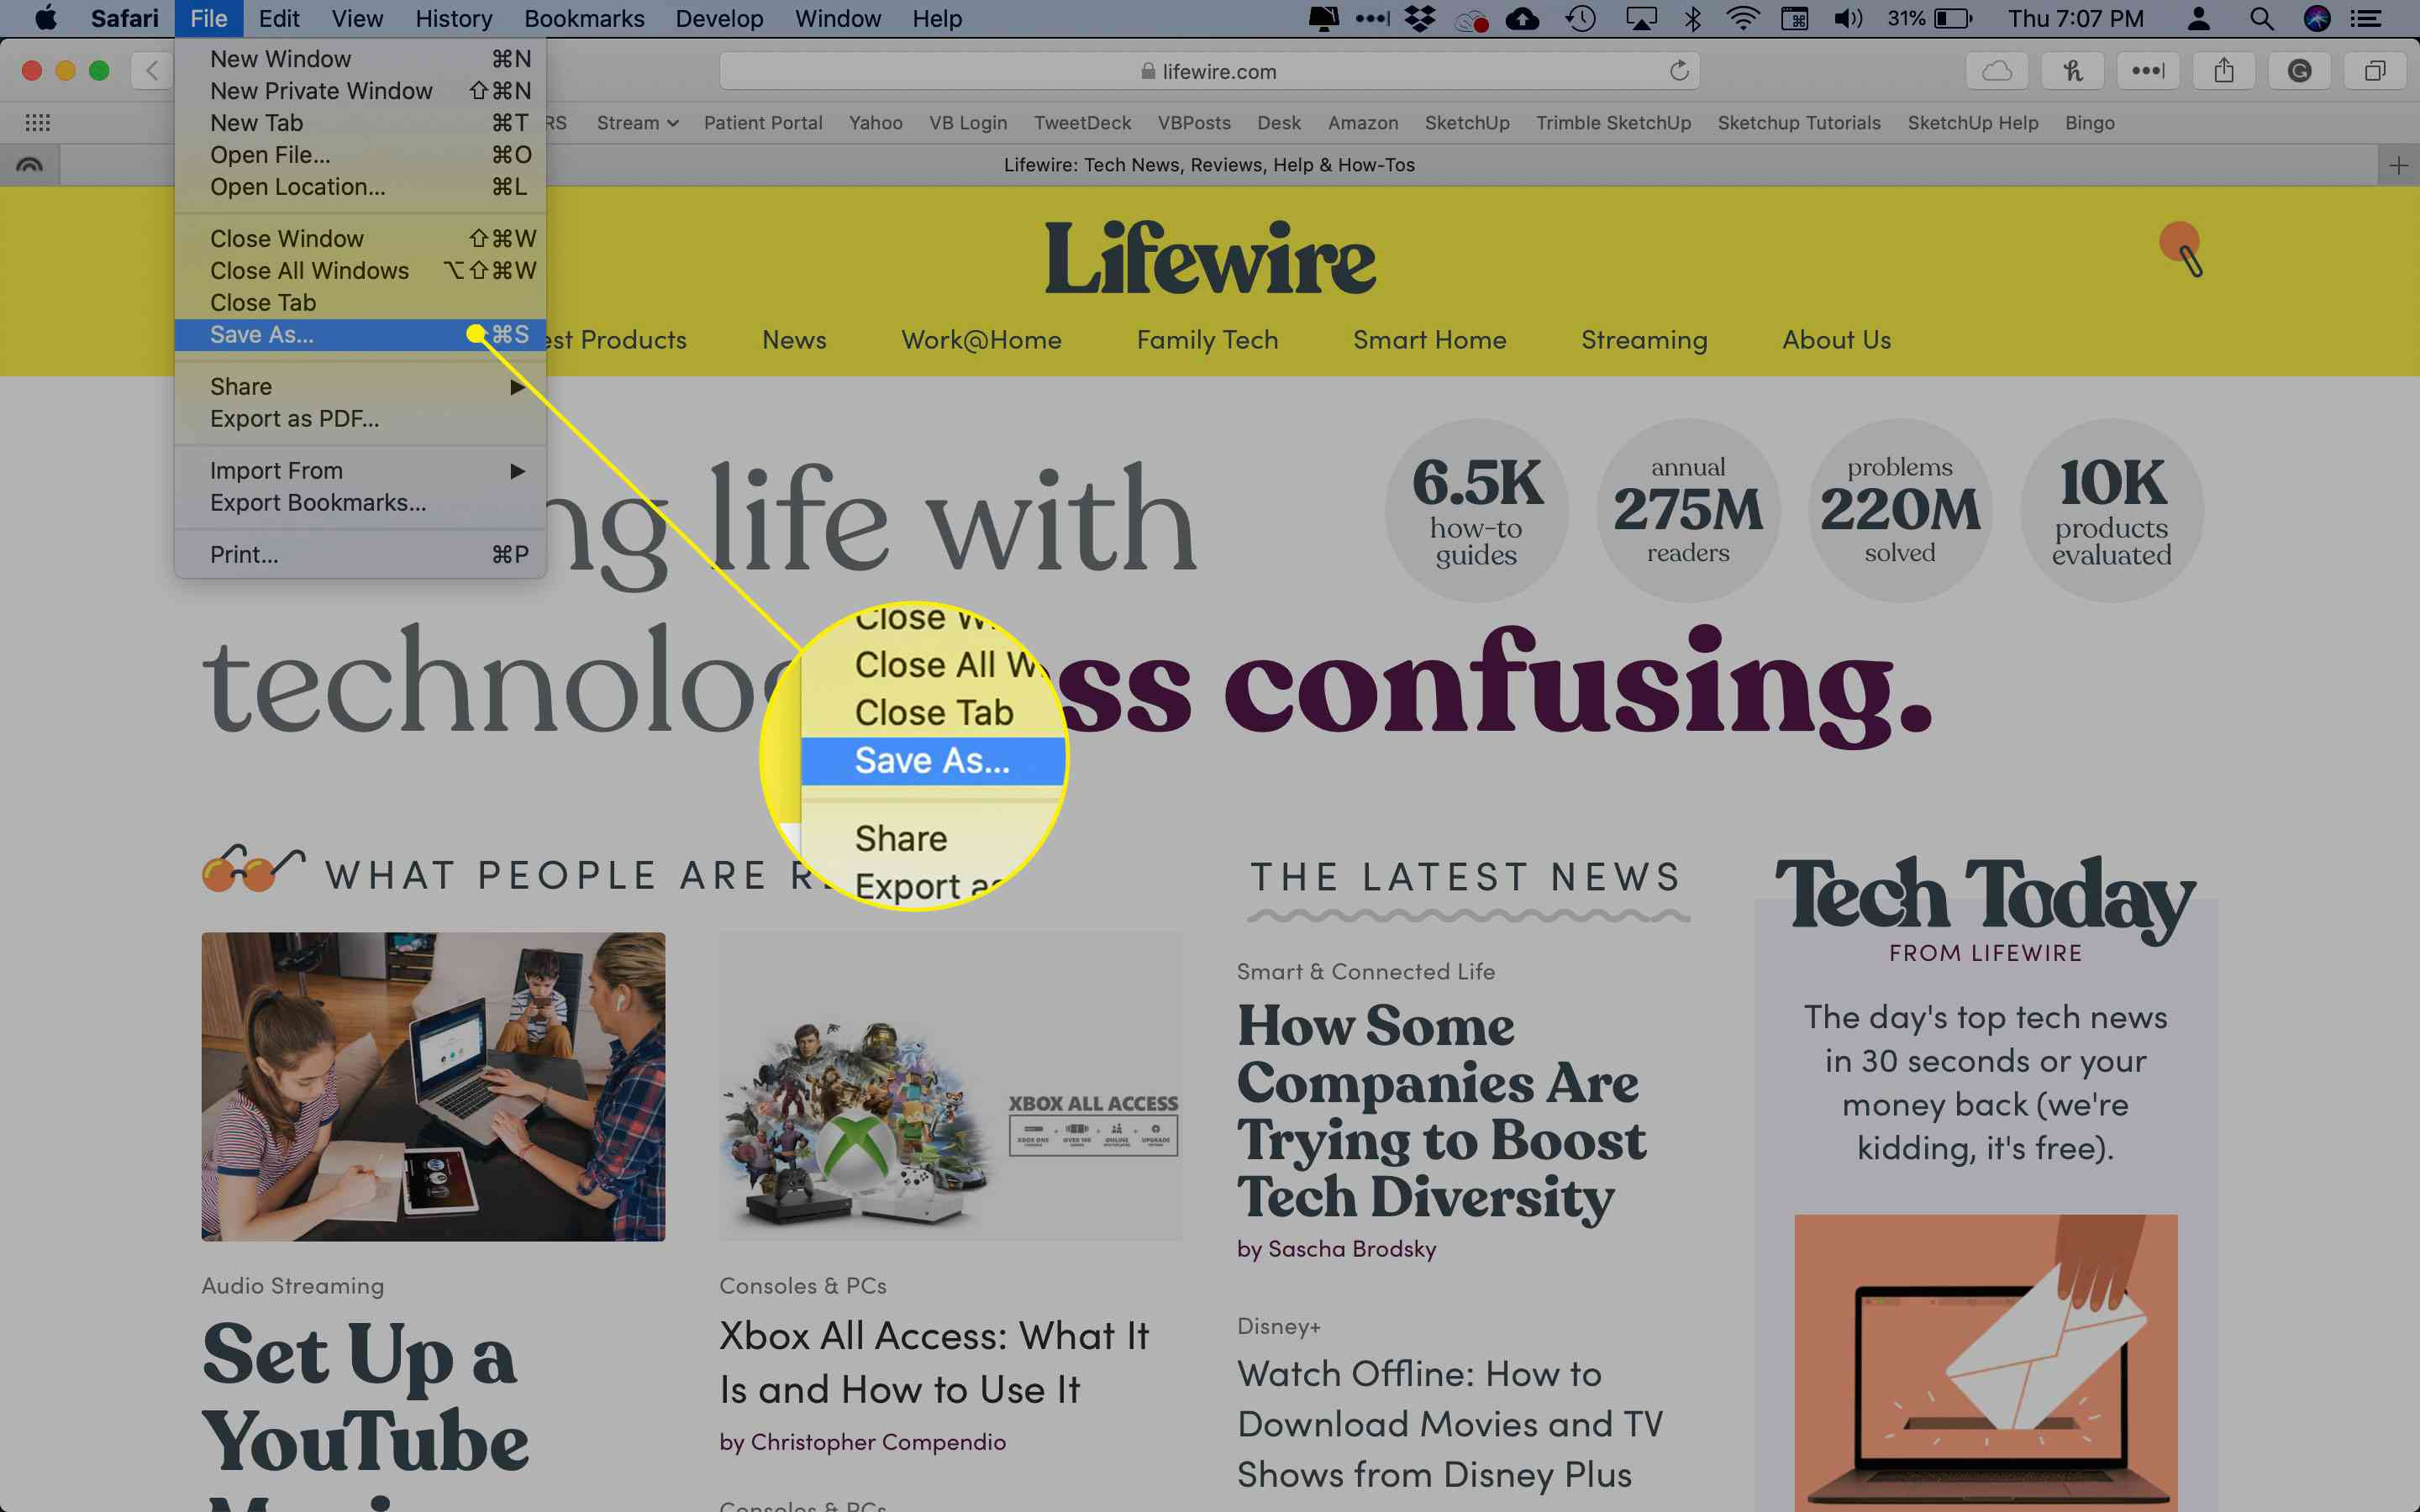 The Save As command in Safari